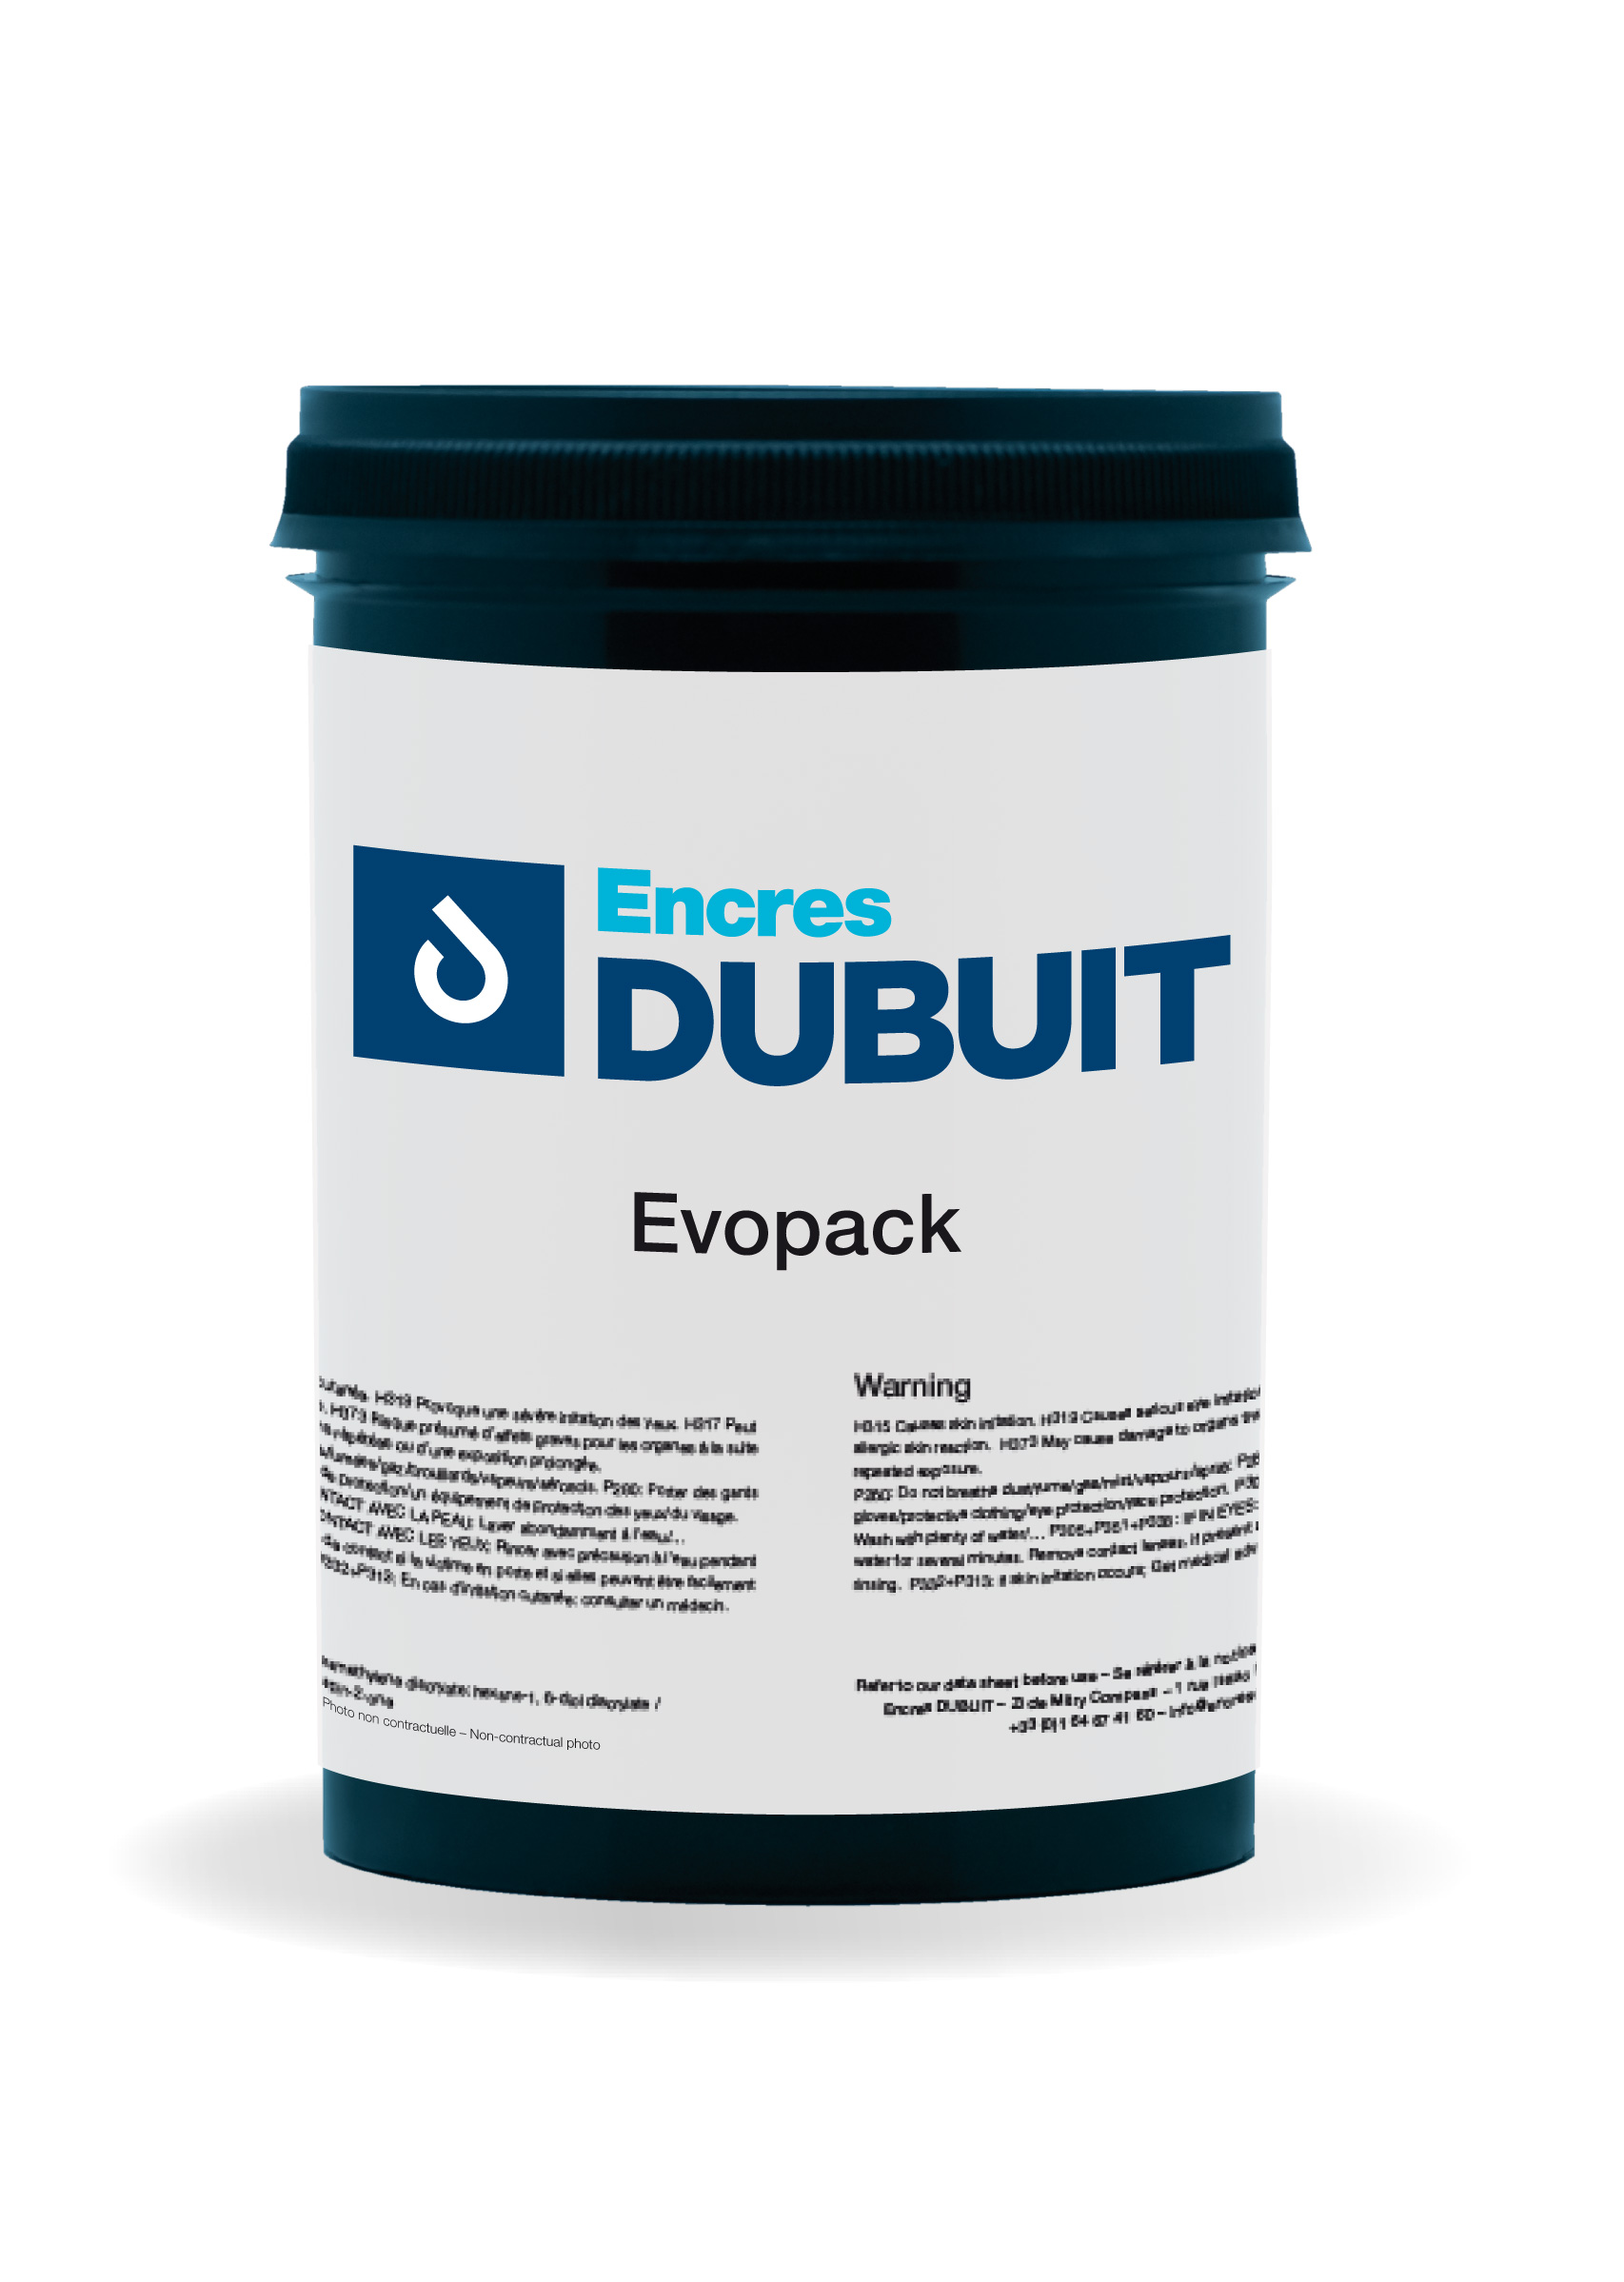 Evopack Encres DUBUIT Screen Printing Ink